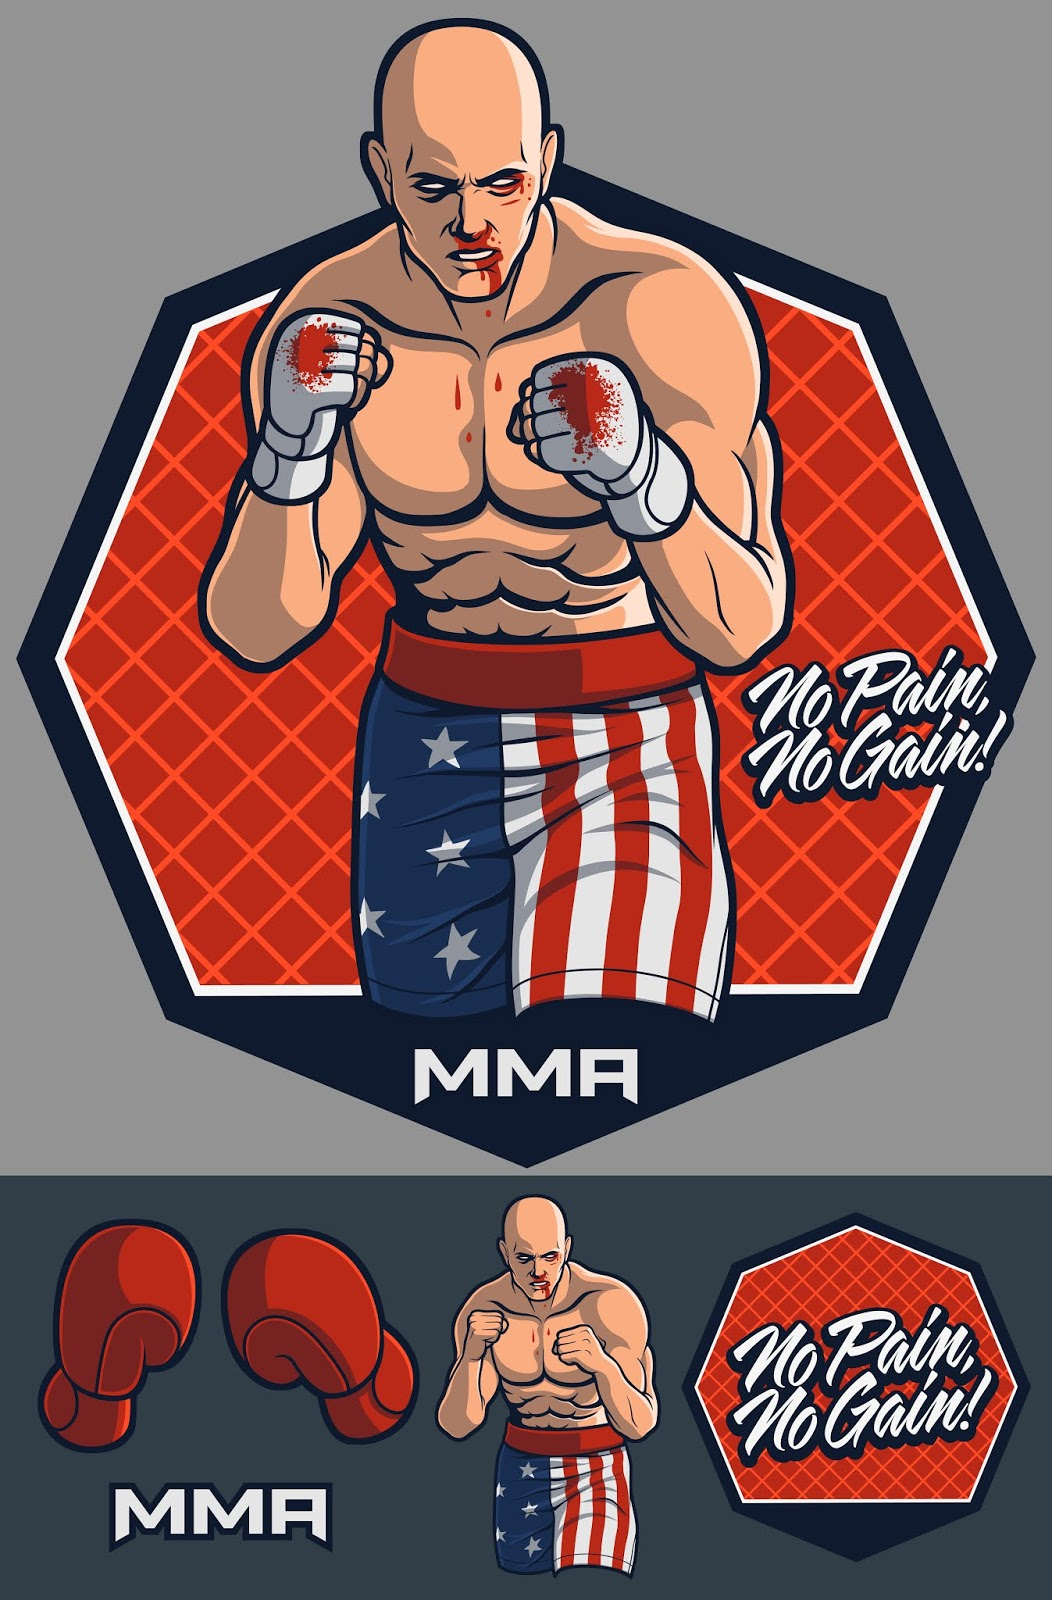 Mma Fighter With Optional Gloves Free Download Vector CDR, AI, EPS and PNG Formats